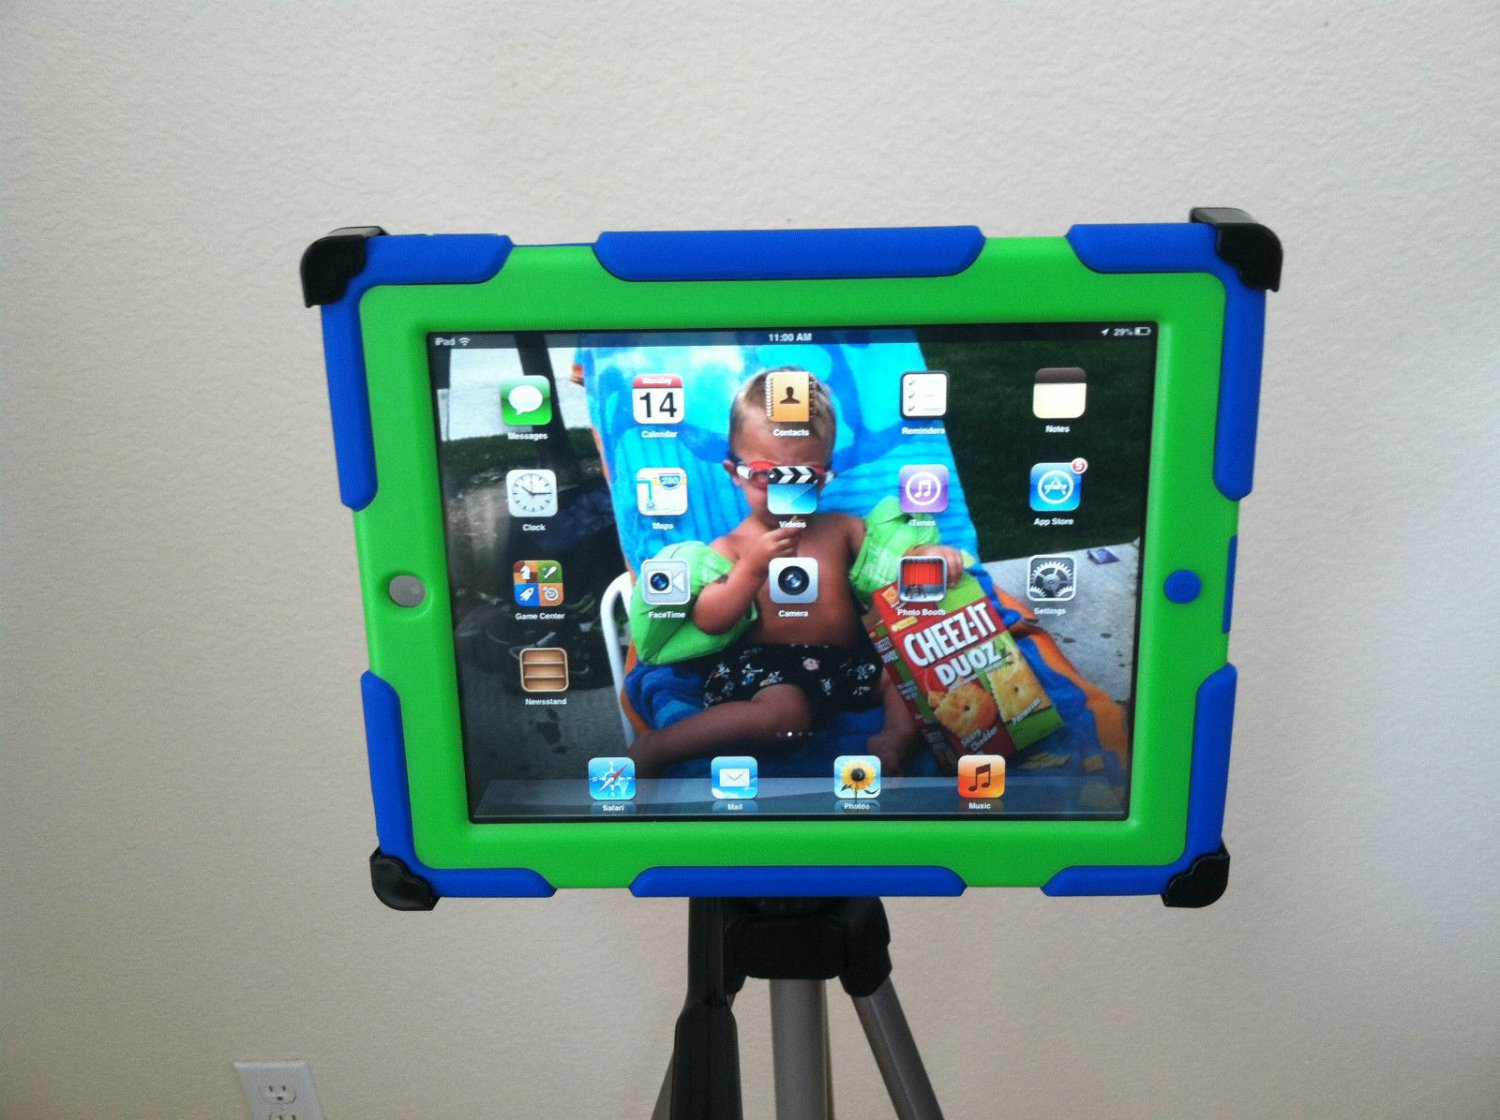 Asus Samsung Tablet Tripod Mounting Bracket Works with or without case